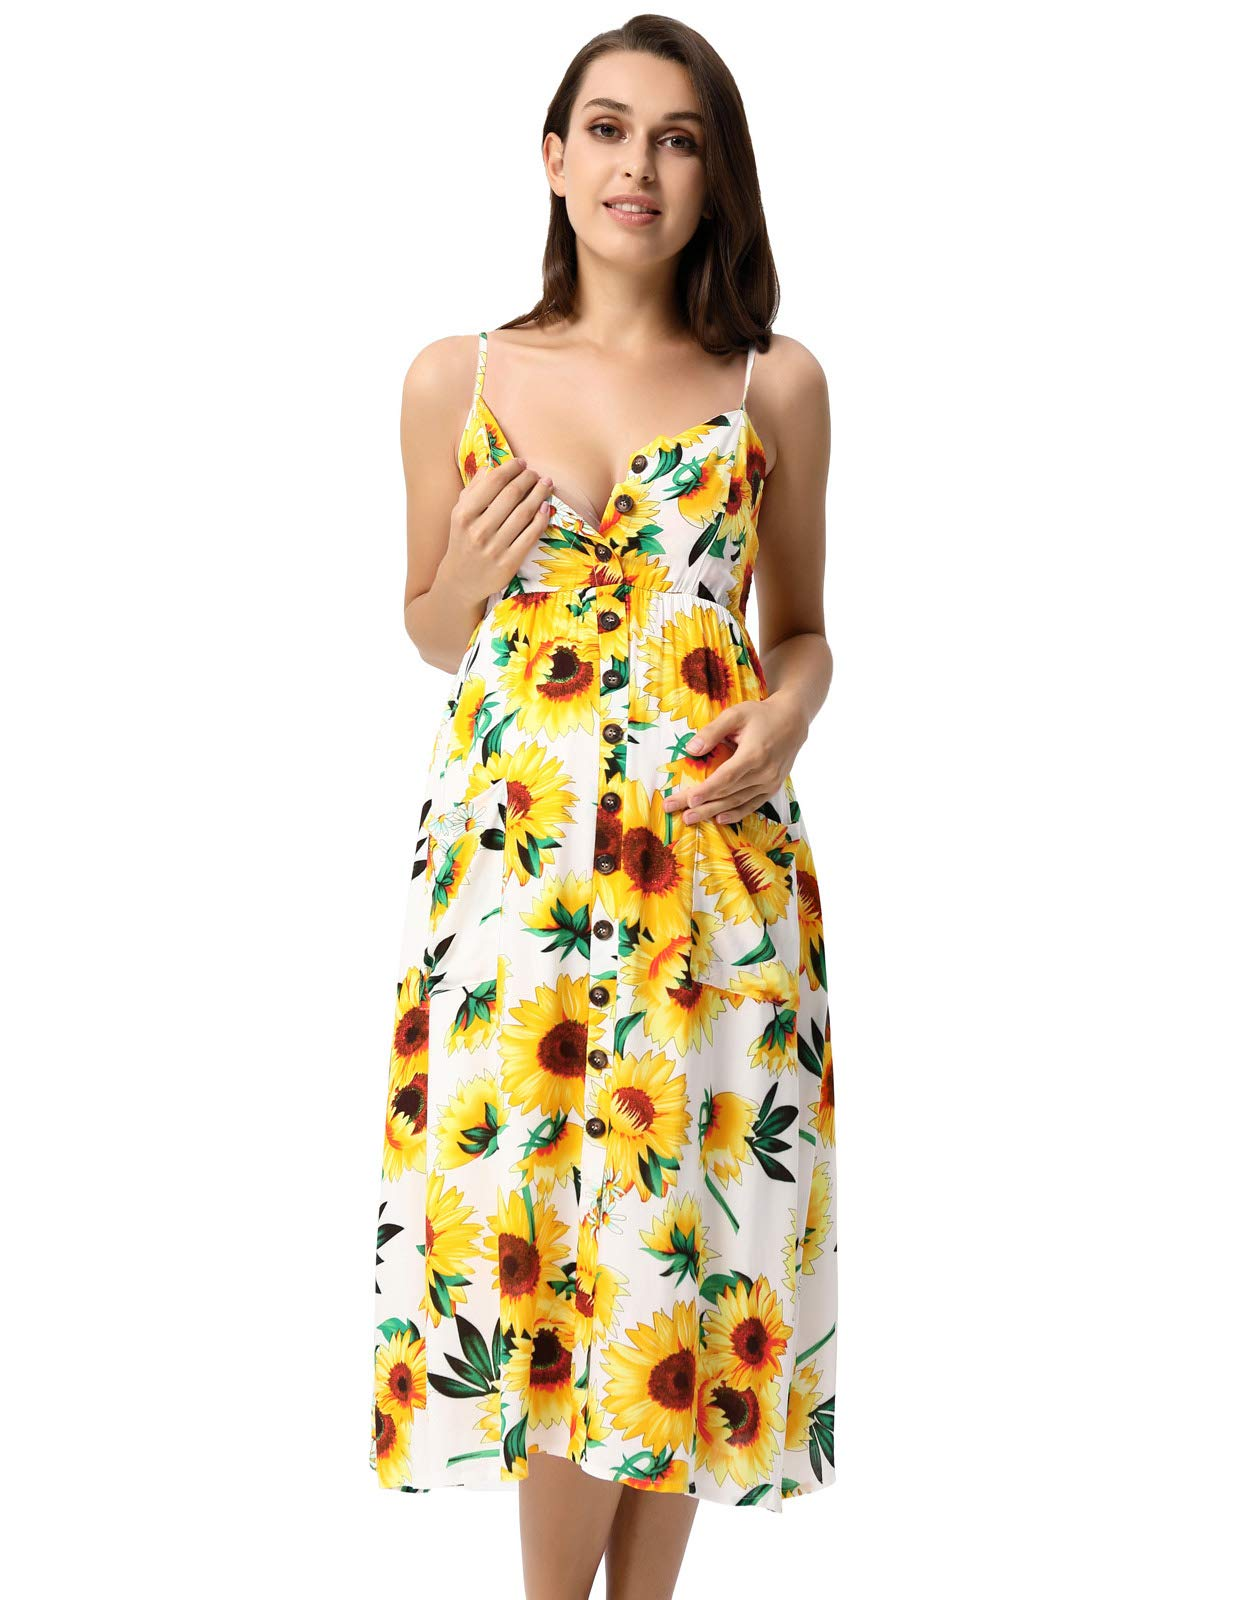 Pregnant Women Maxi DressCasual Floral Dress for Maternity Clothes with Pocket 1021-2 M